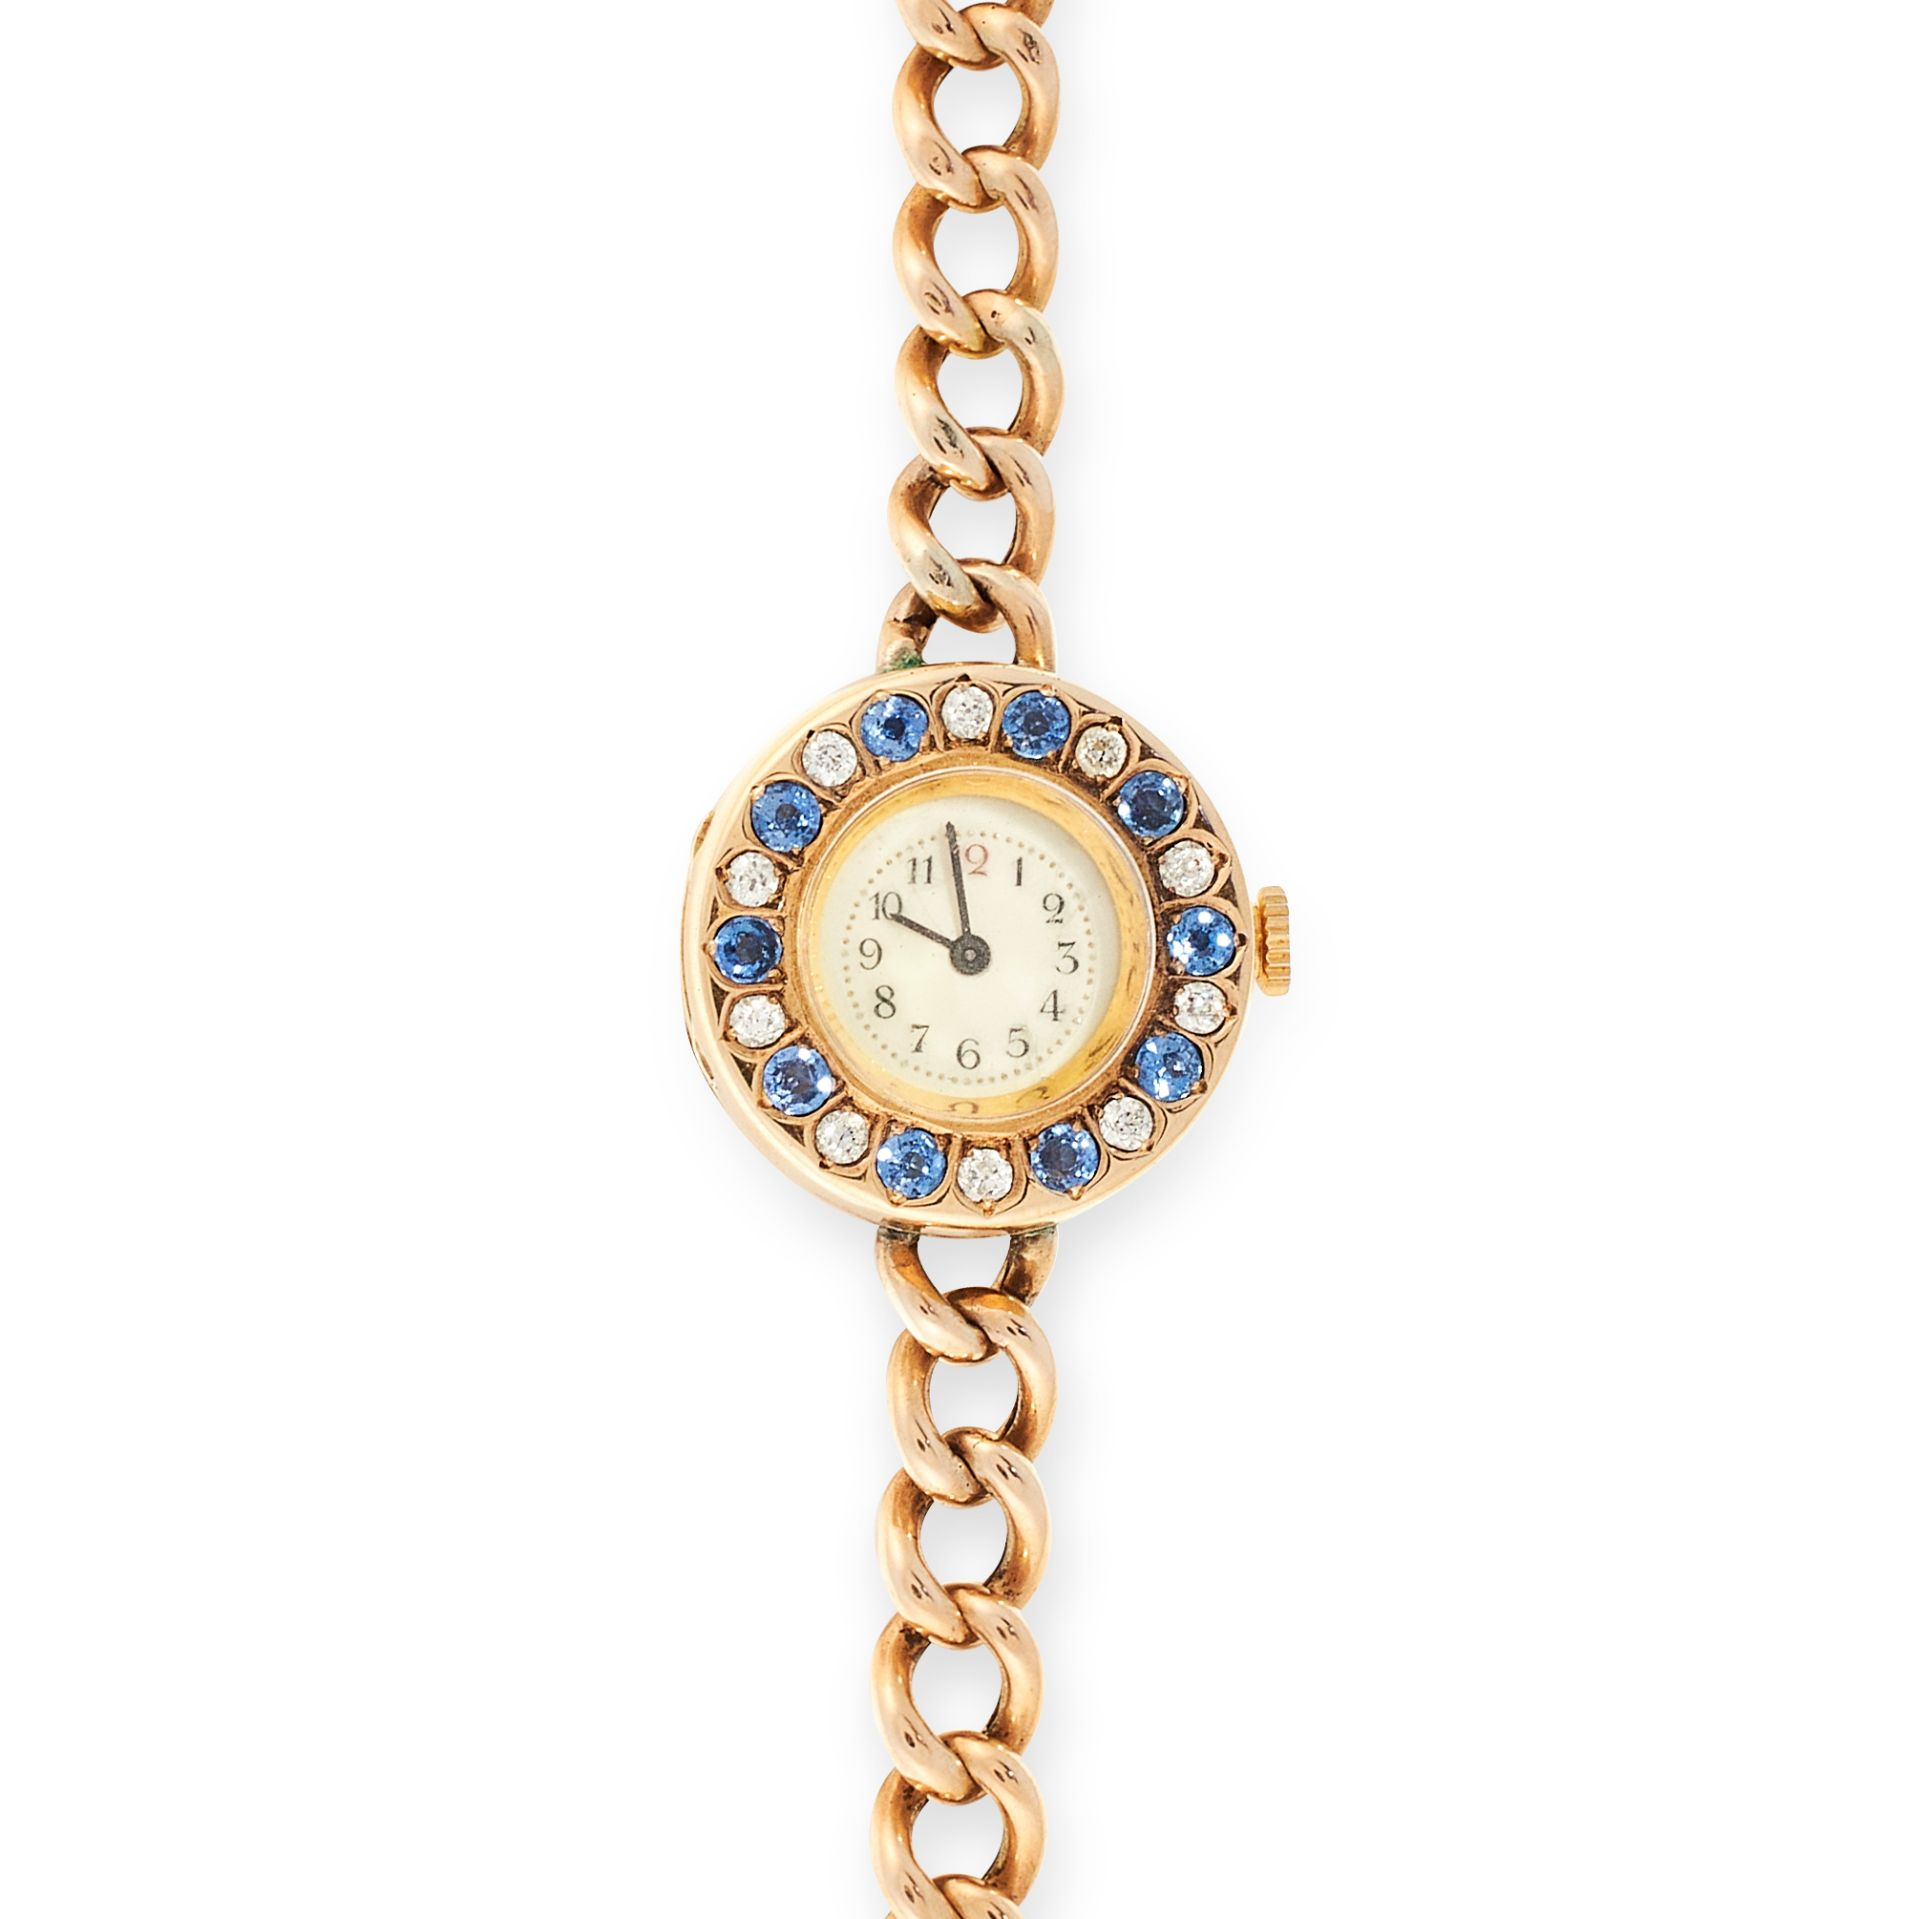 Los 161 - A SAPPHIRE AND DIAMOND COCKTAIL WATCH in 18ct and 15ct yellow gold, the circular watch face jewelled